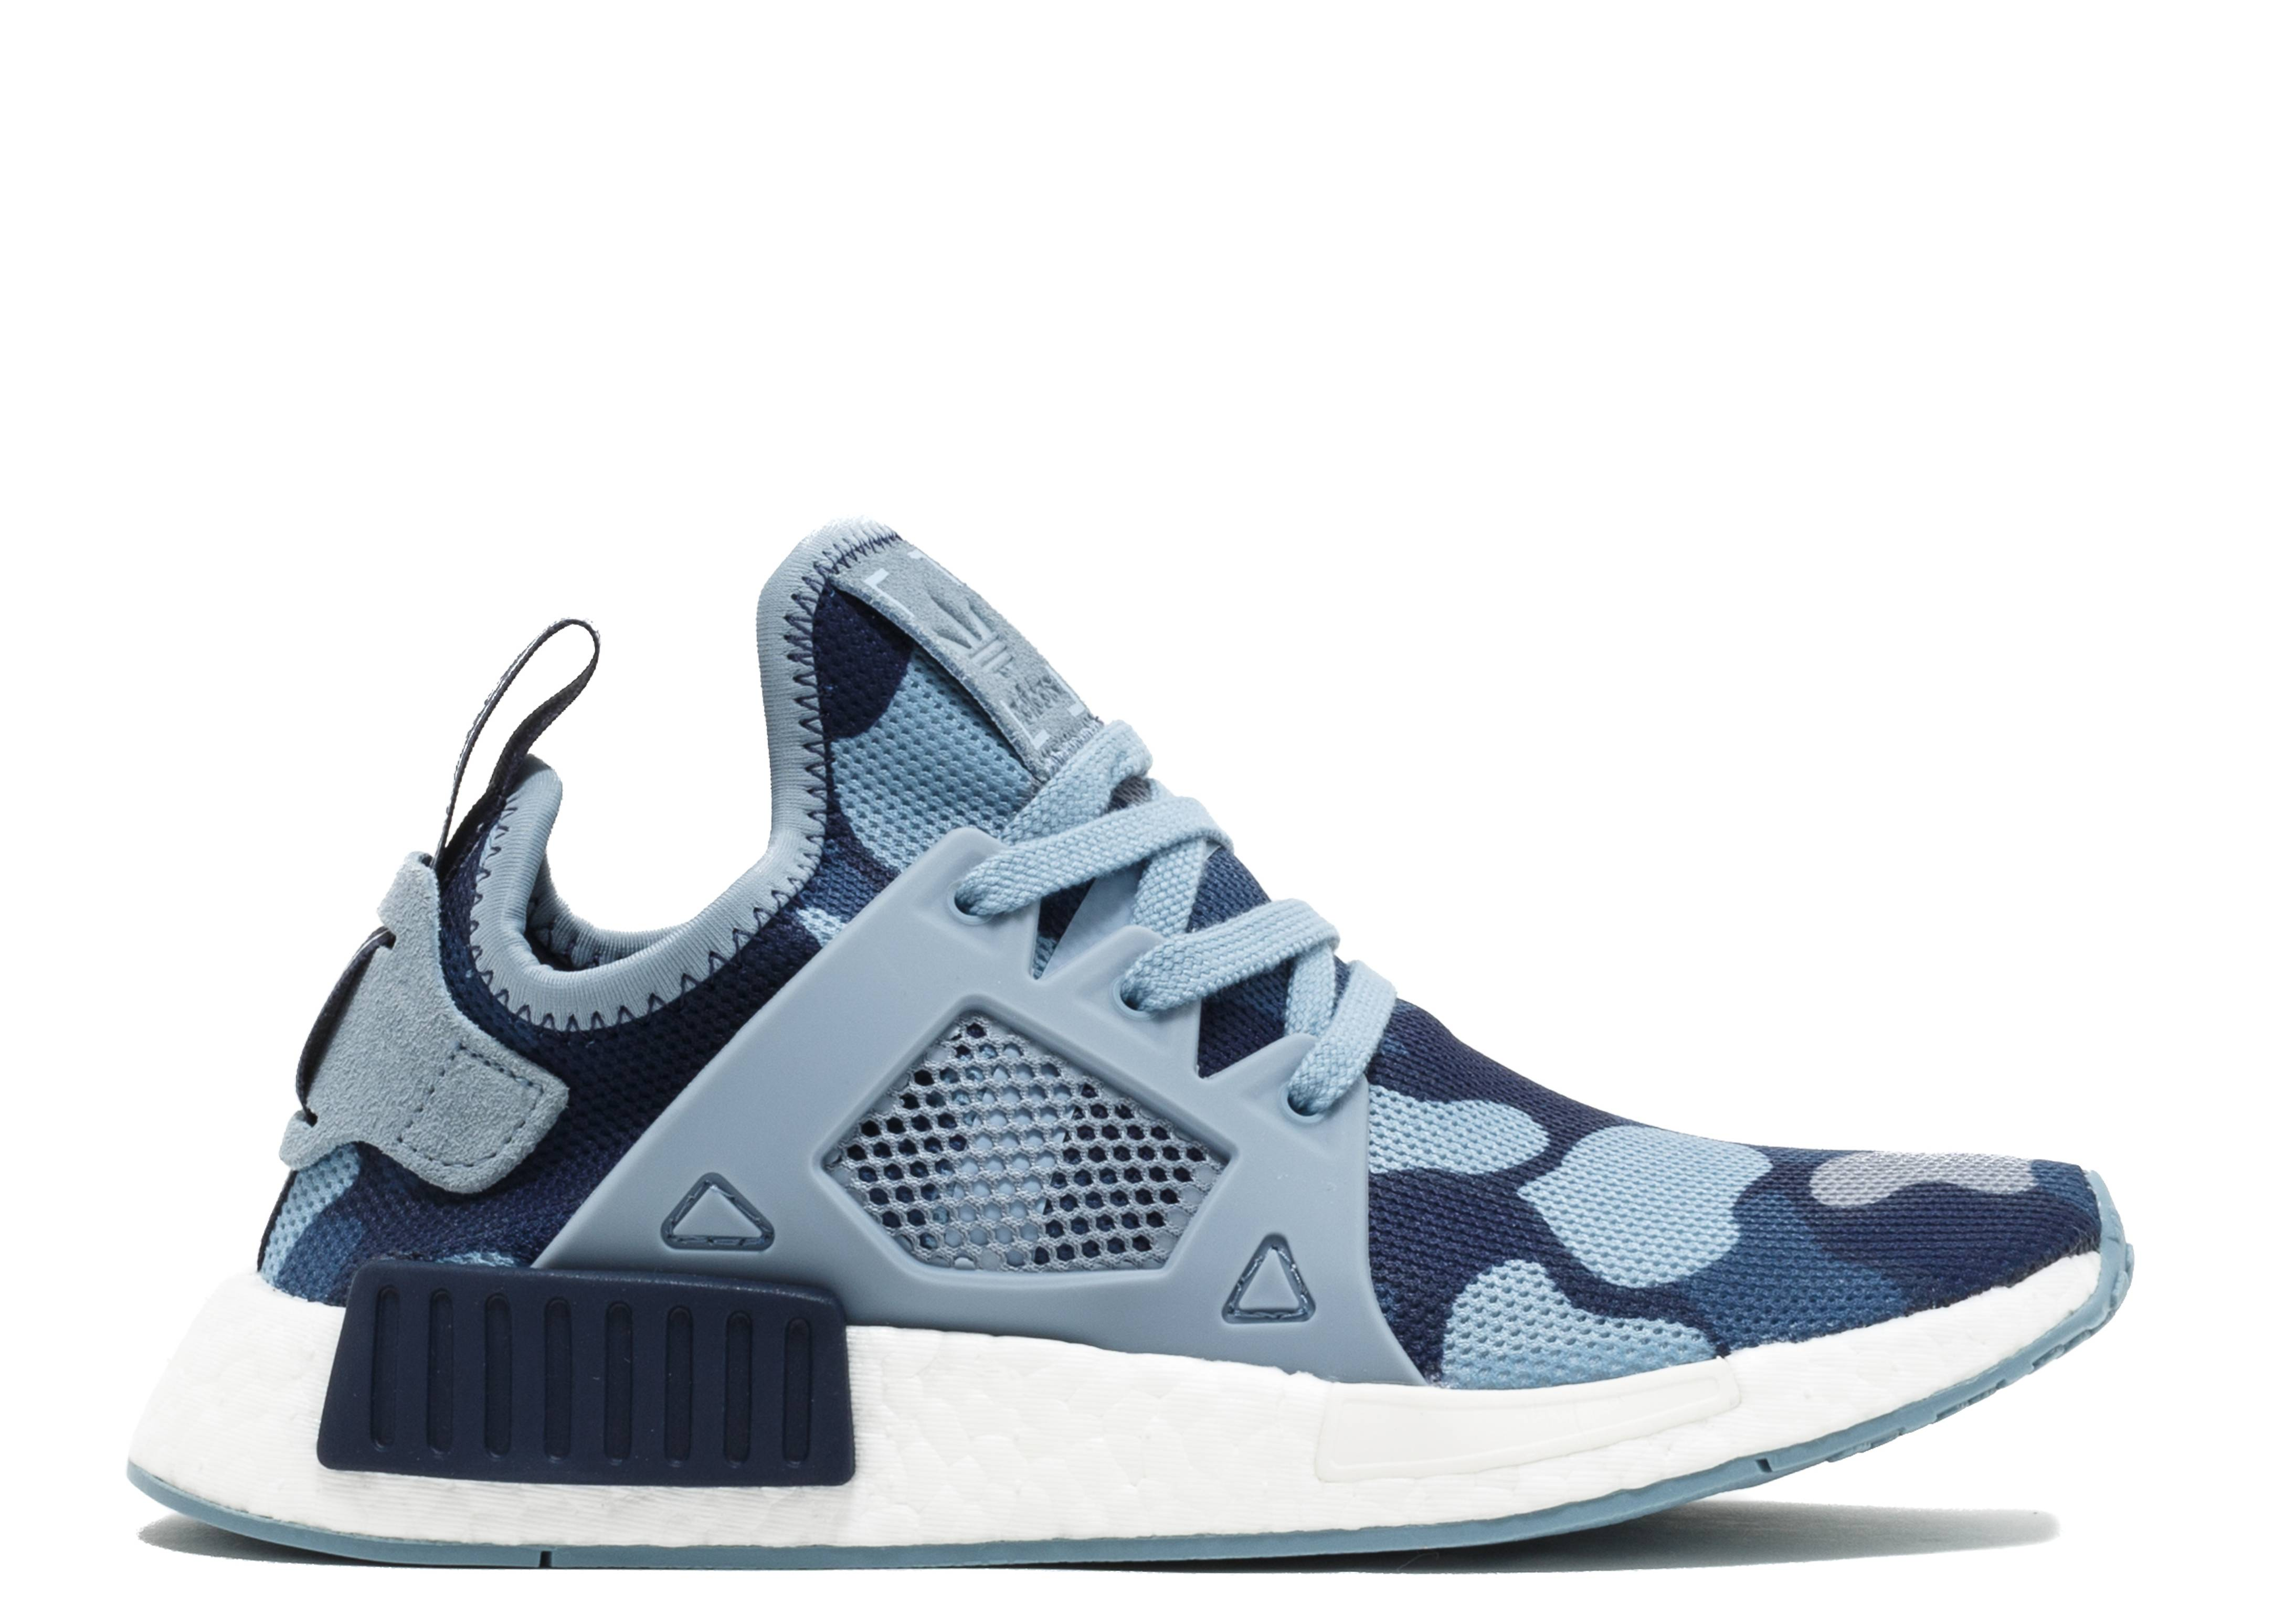 online retailer 0bf0e 84647 nmd xr1 w